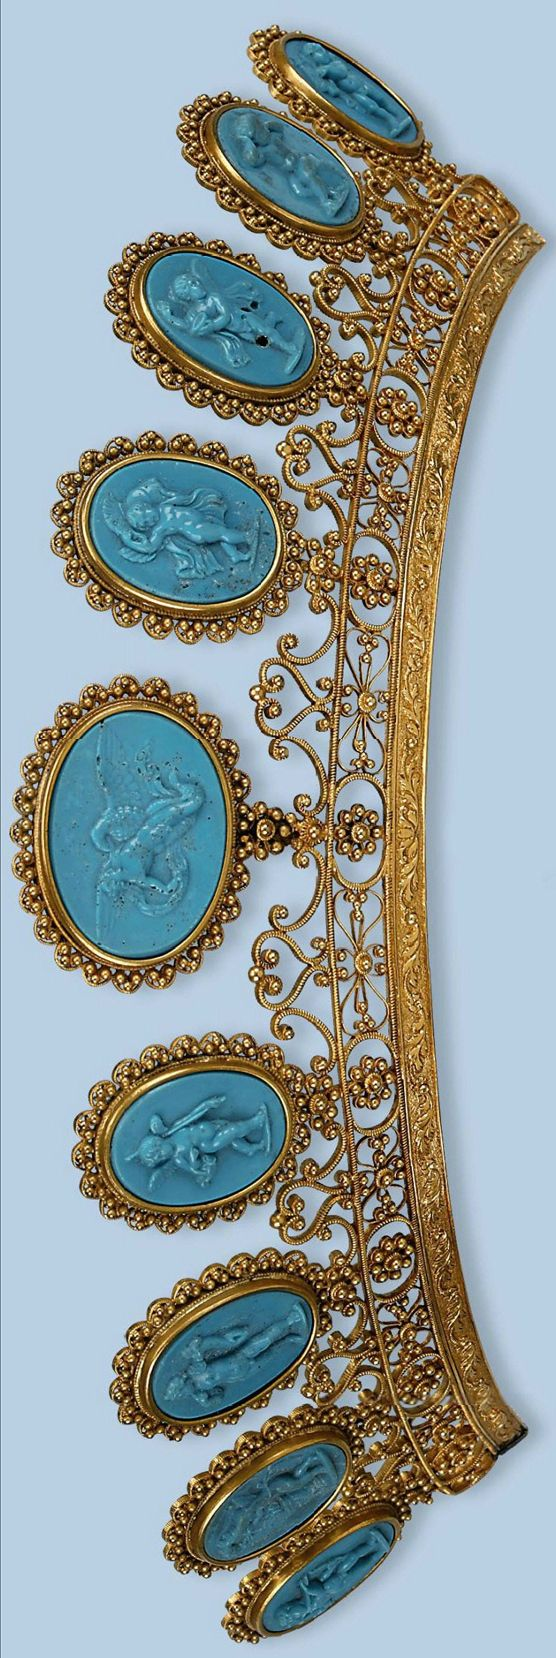 A parure comprising a tiara with two mounts, a pair of bracelets, a necklace, and a pair of earrings, each composed of a row of blue pressed glass cameos in various sizes, depicting philosophers, classical gods, and various scenes after the antiques, within borders of cannetille work and filigree mounts, French, circa 1800, w/fitted case.